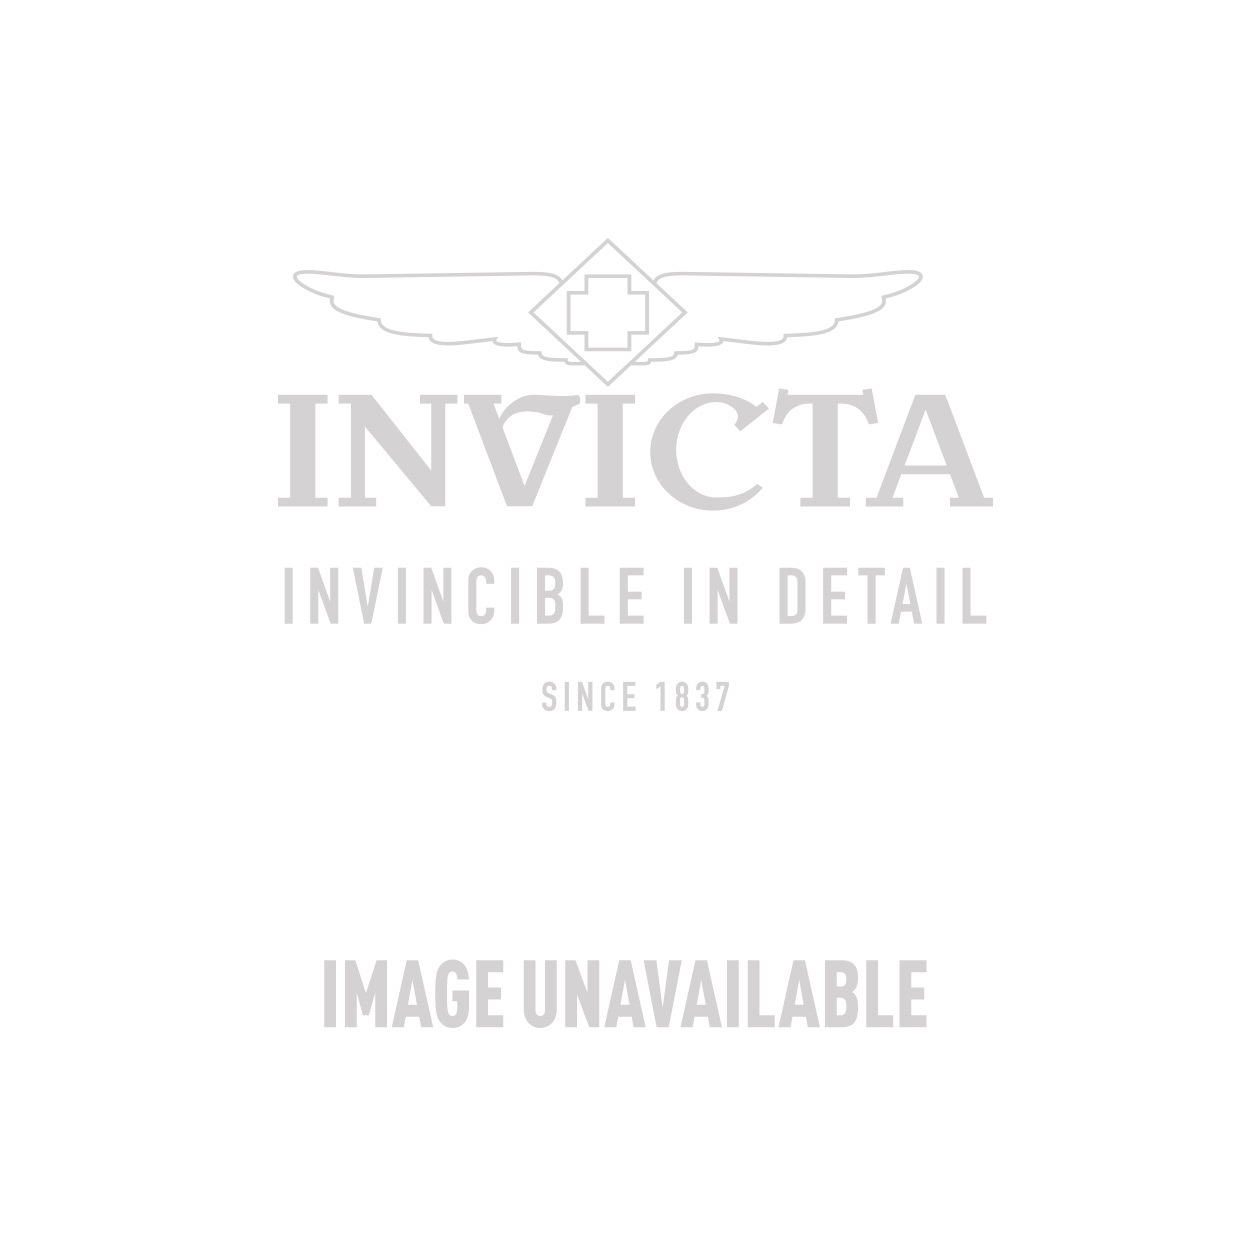 Invicta I-Force Quartz Watch - Gold case with Black tone Leather band - Model 3330